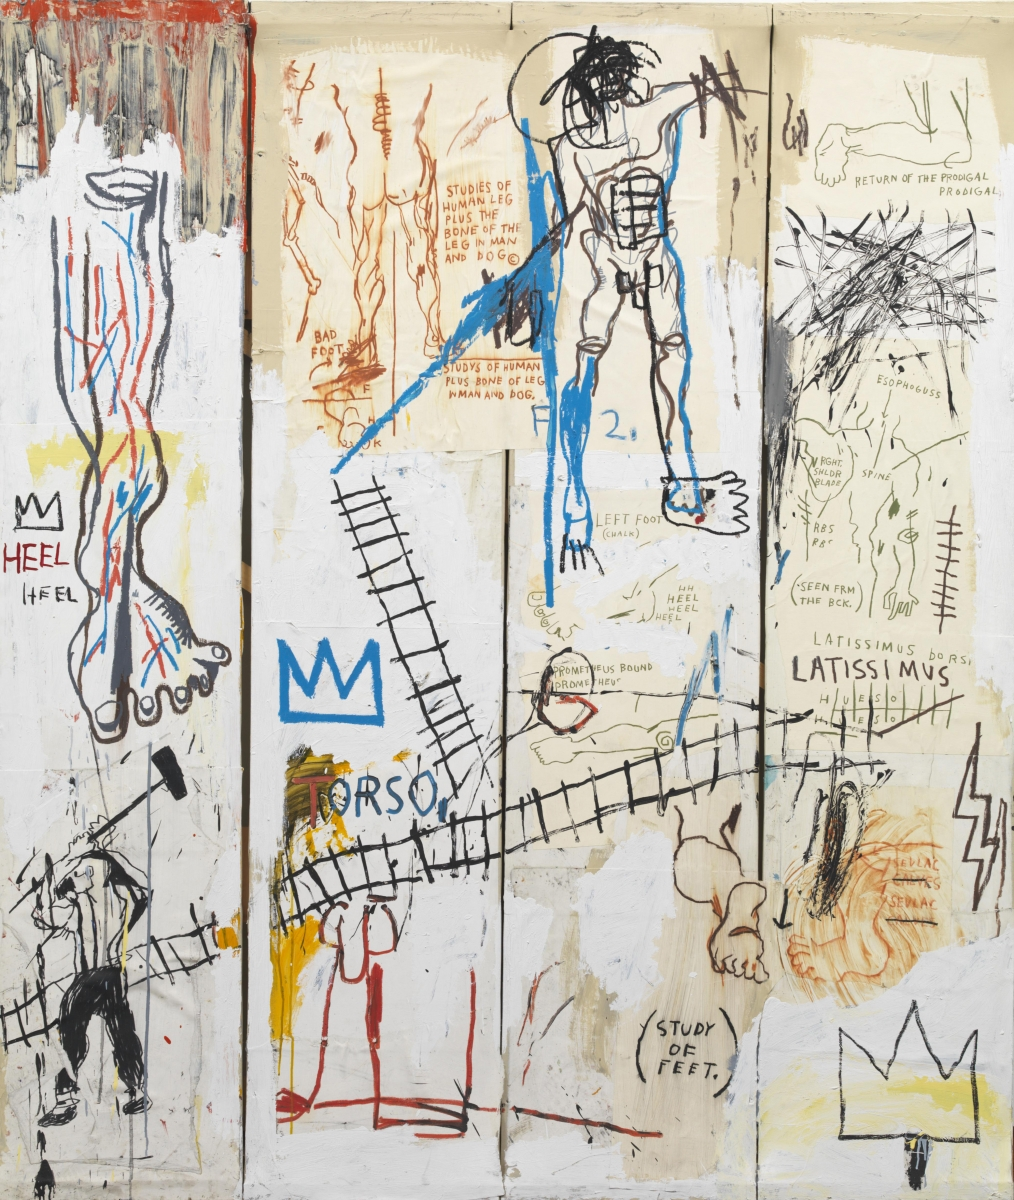 Jean-Michel Basquiat (American, 1960–1982), Leonardo da Vinci's Greatest Hits, 1982. Acrylic, colored crayon, oil paintstick, and pencil on paper, 213.2 x 183.4 cm. Schorr Family Collection. c Artists Rights Society (ARS), New York / ADAGP, Paris / photo: Bruce M. White